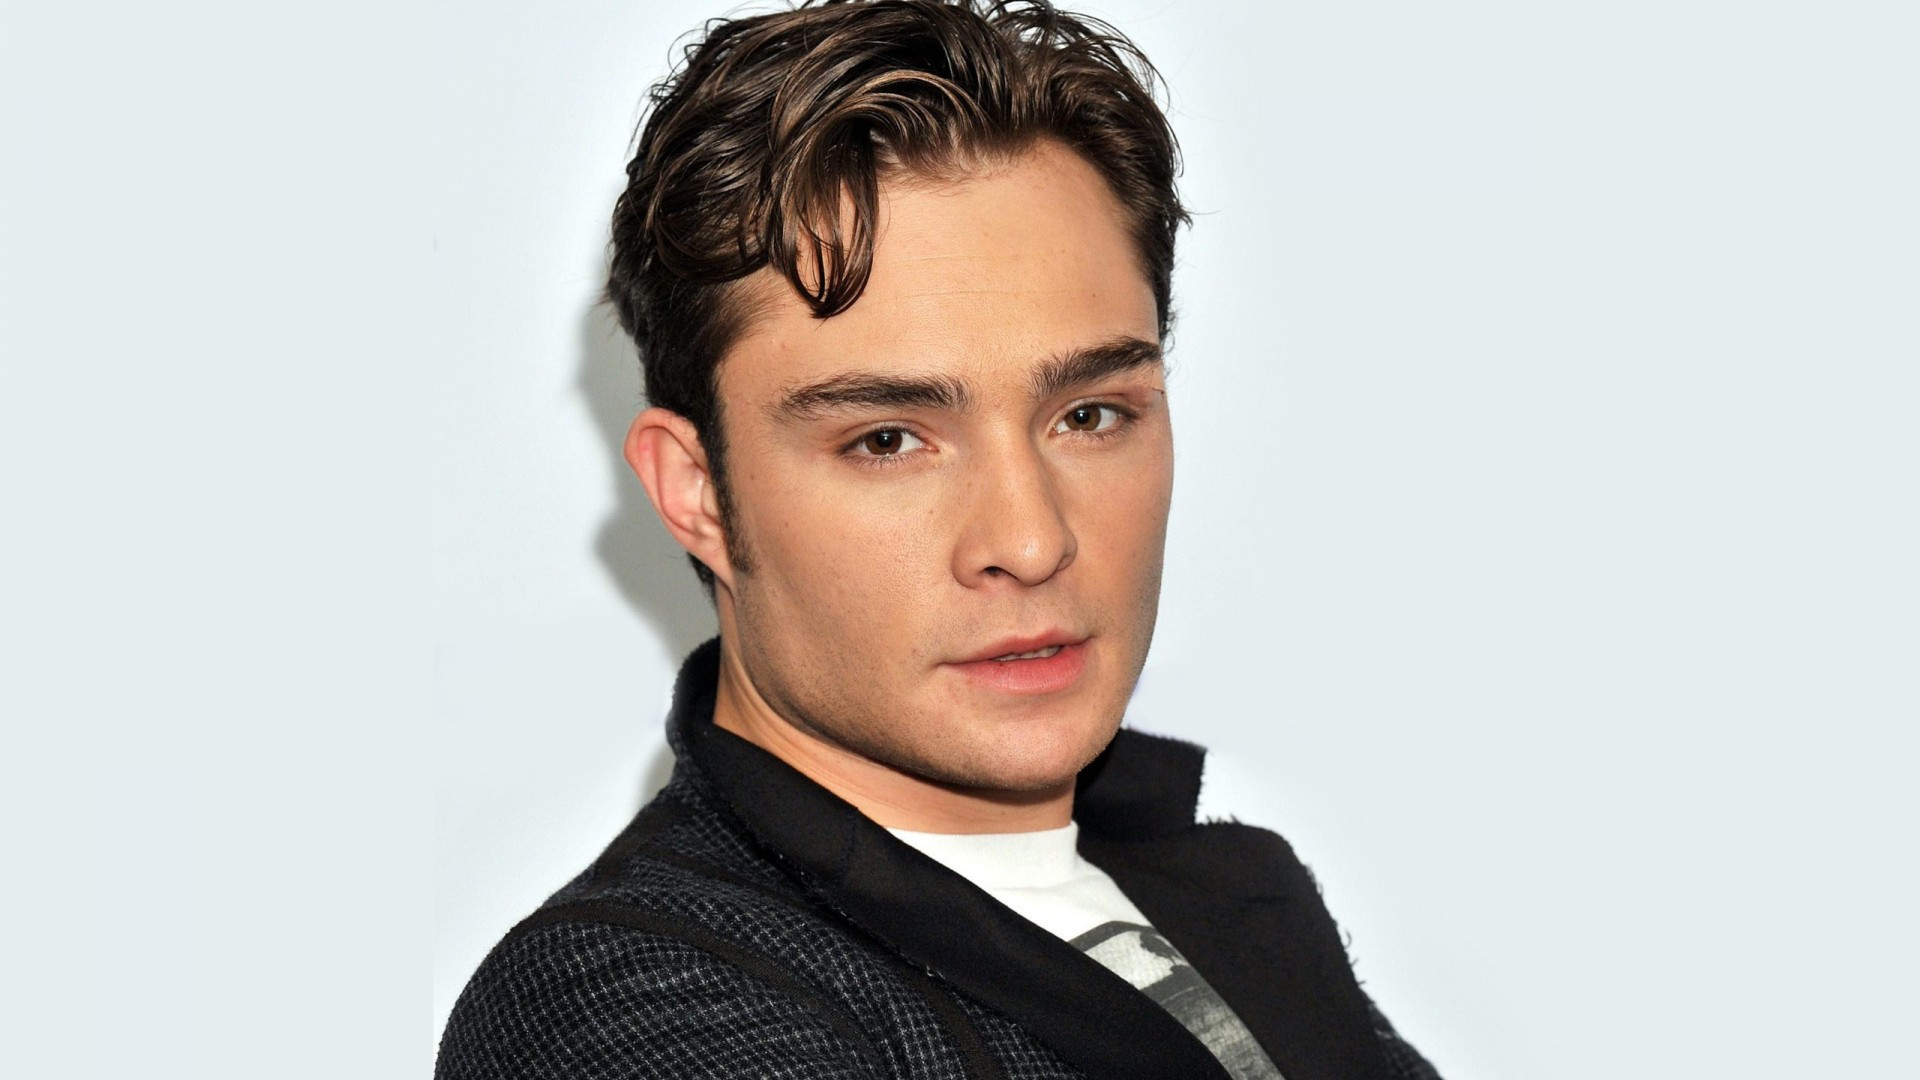 Ed Westwick 2014 - Wallpaper, High Definition, High Quality ... Ed Westwick